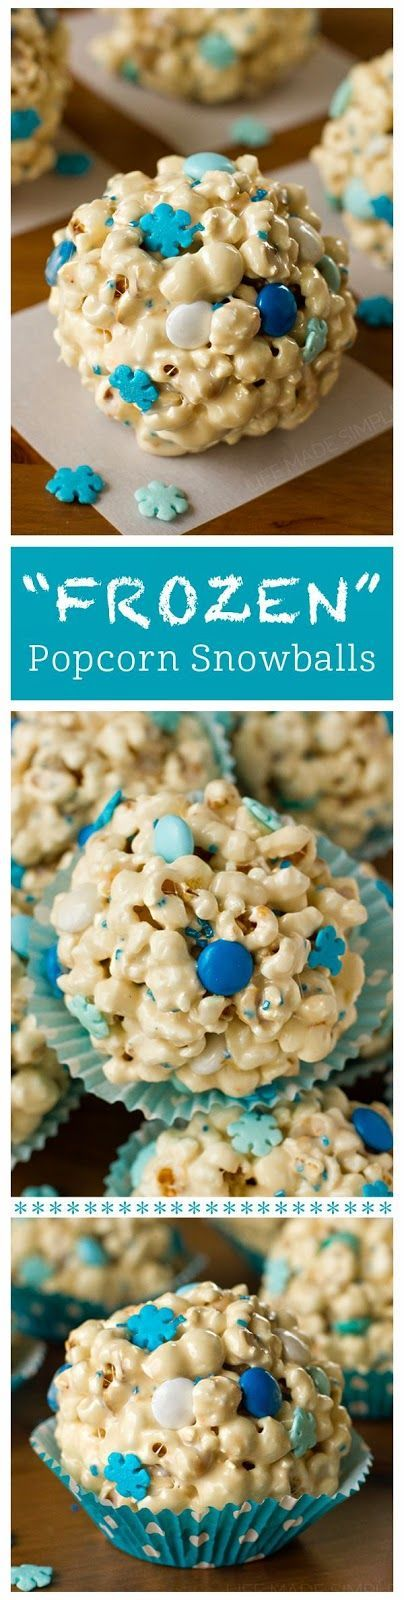 "DIY : ""Frozen"" Popcorn Snowballs in the Group Board ♥ CREATIVE and ORIGINAL FOOD (KIDS preferably) http://www.pinterest.com/yourfrenchtouch/creative-and-original-food-kids-preferably:"